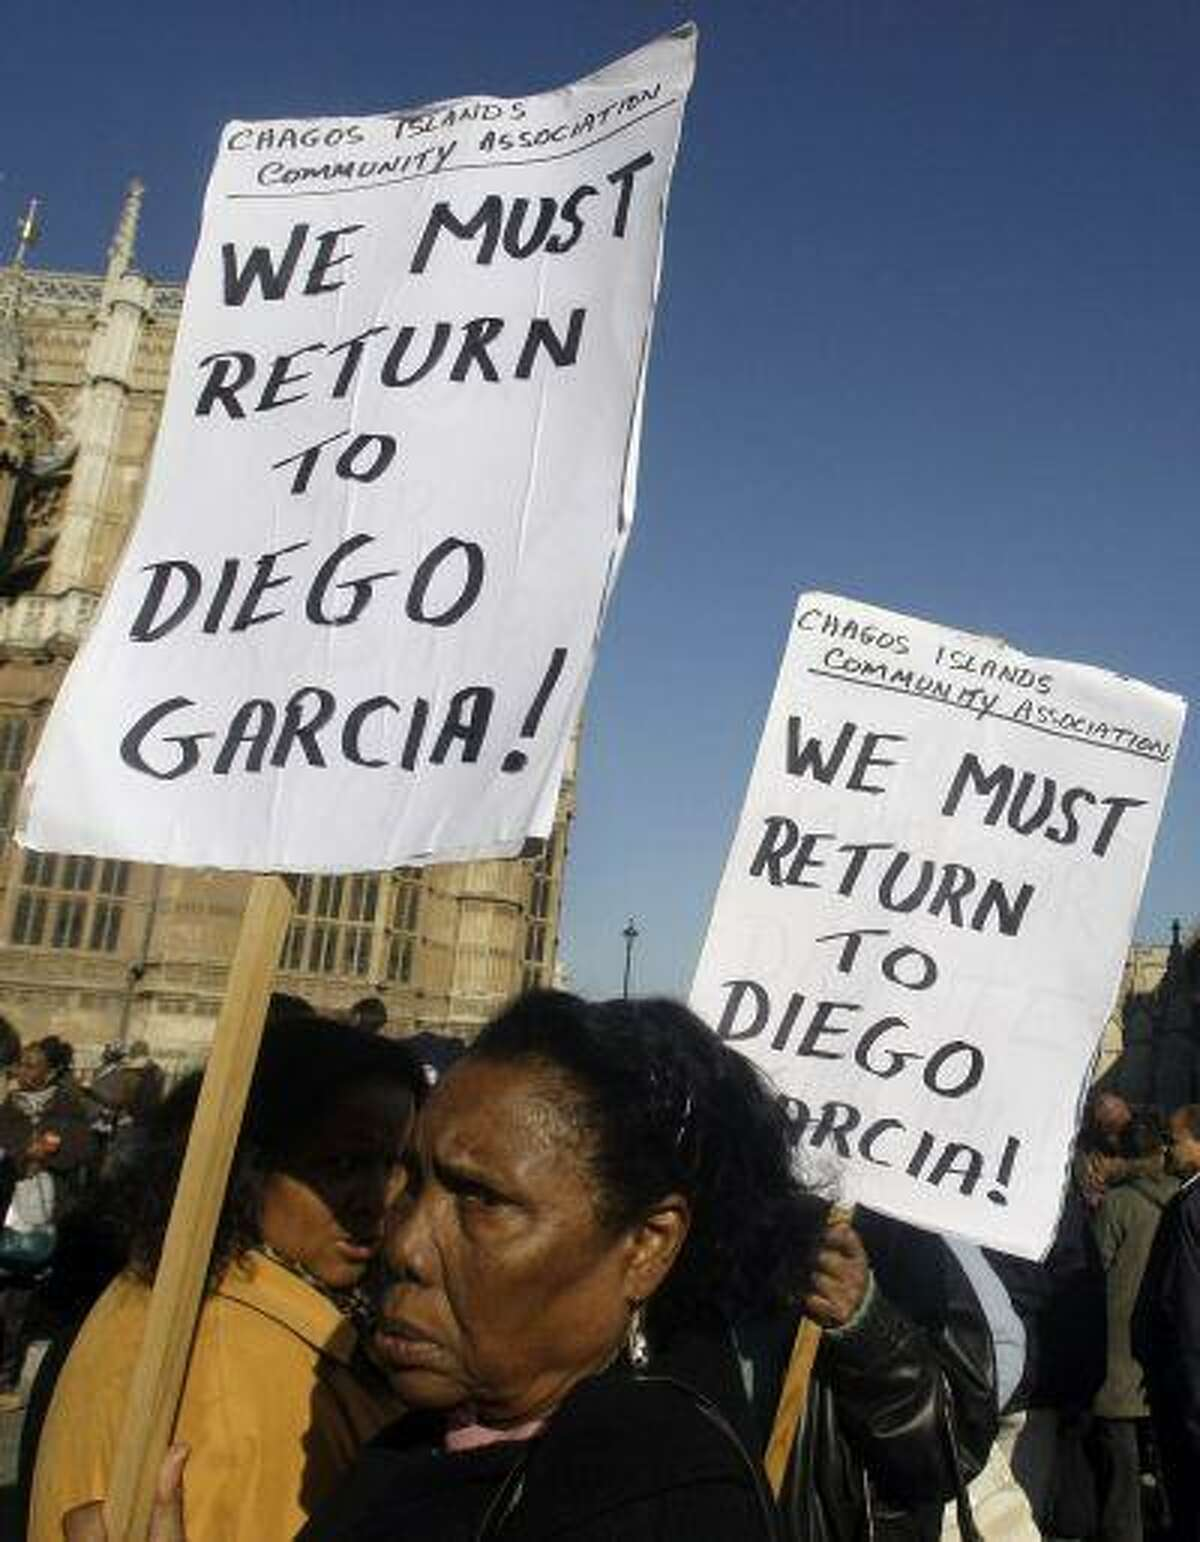 Women take part in a protest outside the Houses of Parliament in London, after a court ruling decided Chagos Islanders are not allowed to return to their homeland, Wednesday Oct. 22, 2008.